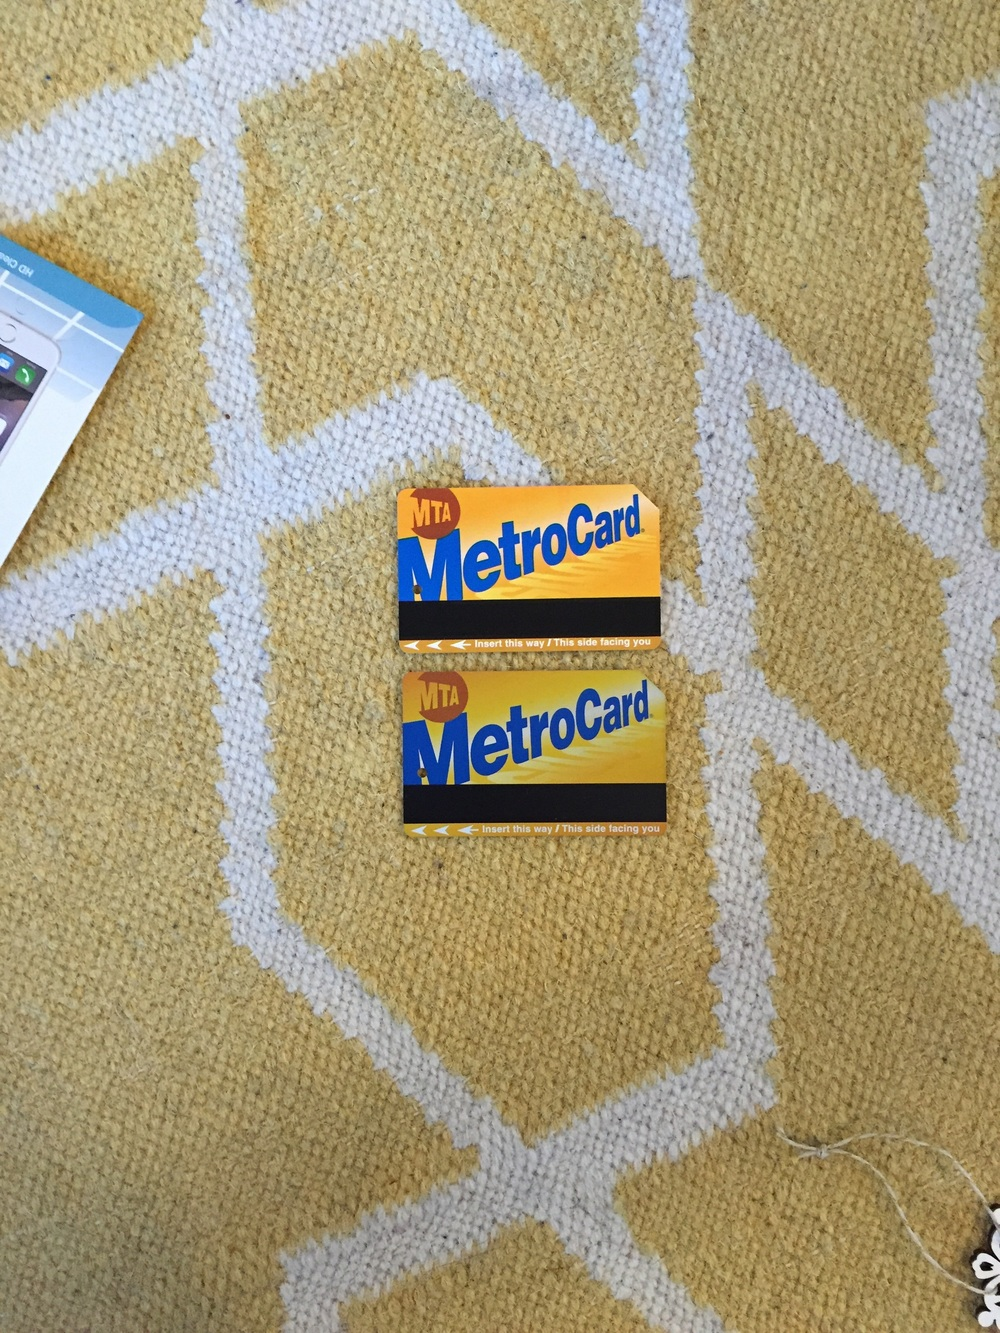 During his work, he found two Metrocards and matched them!